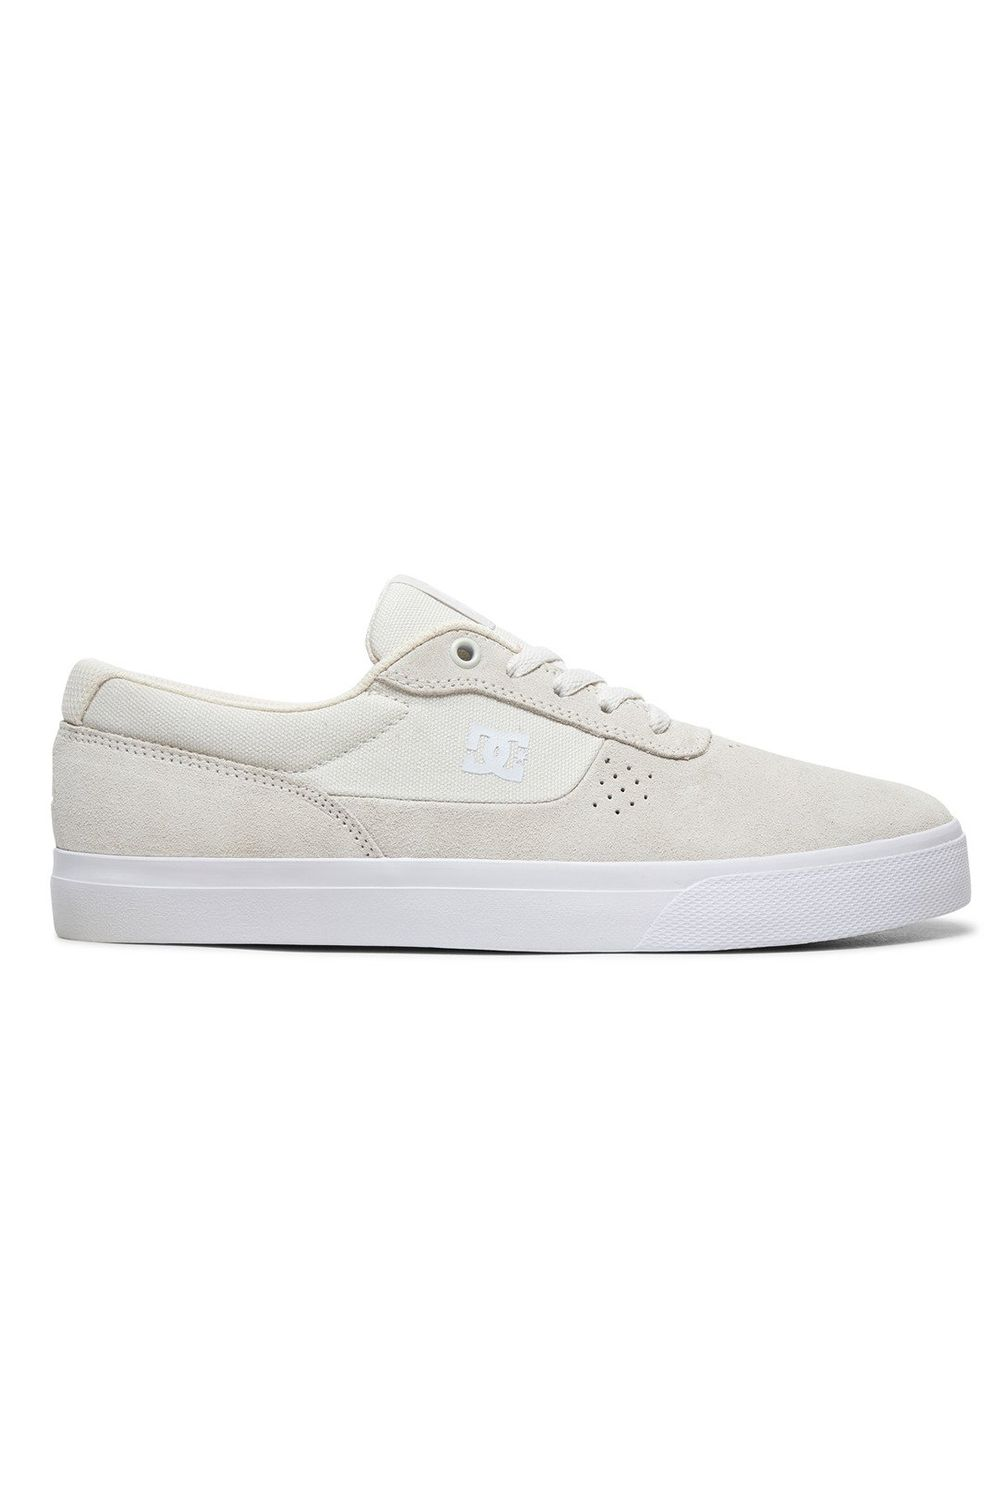 Tenis DC Shoes SWITCH S White/Gum